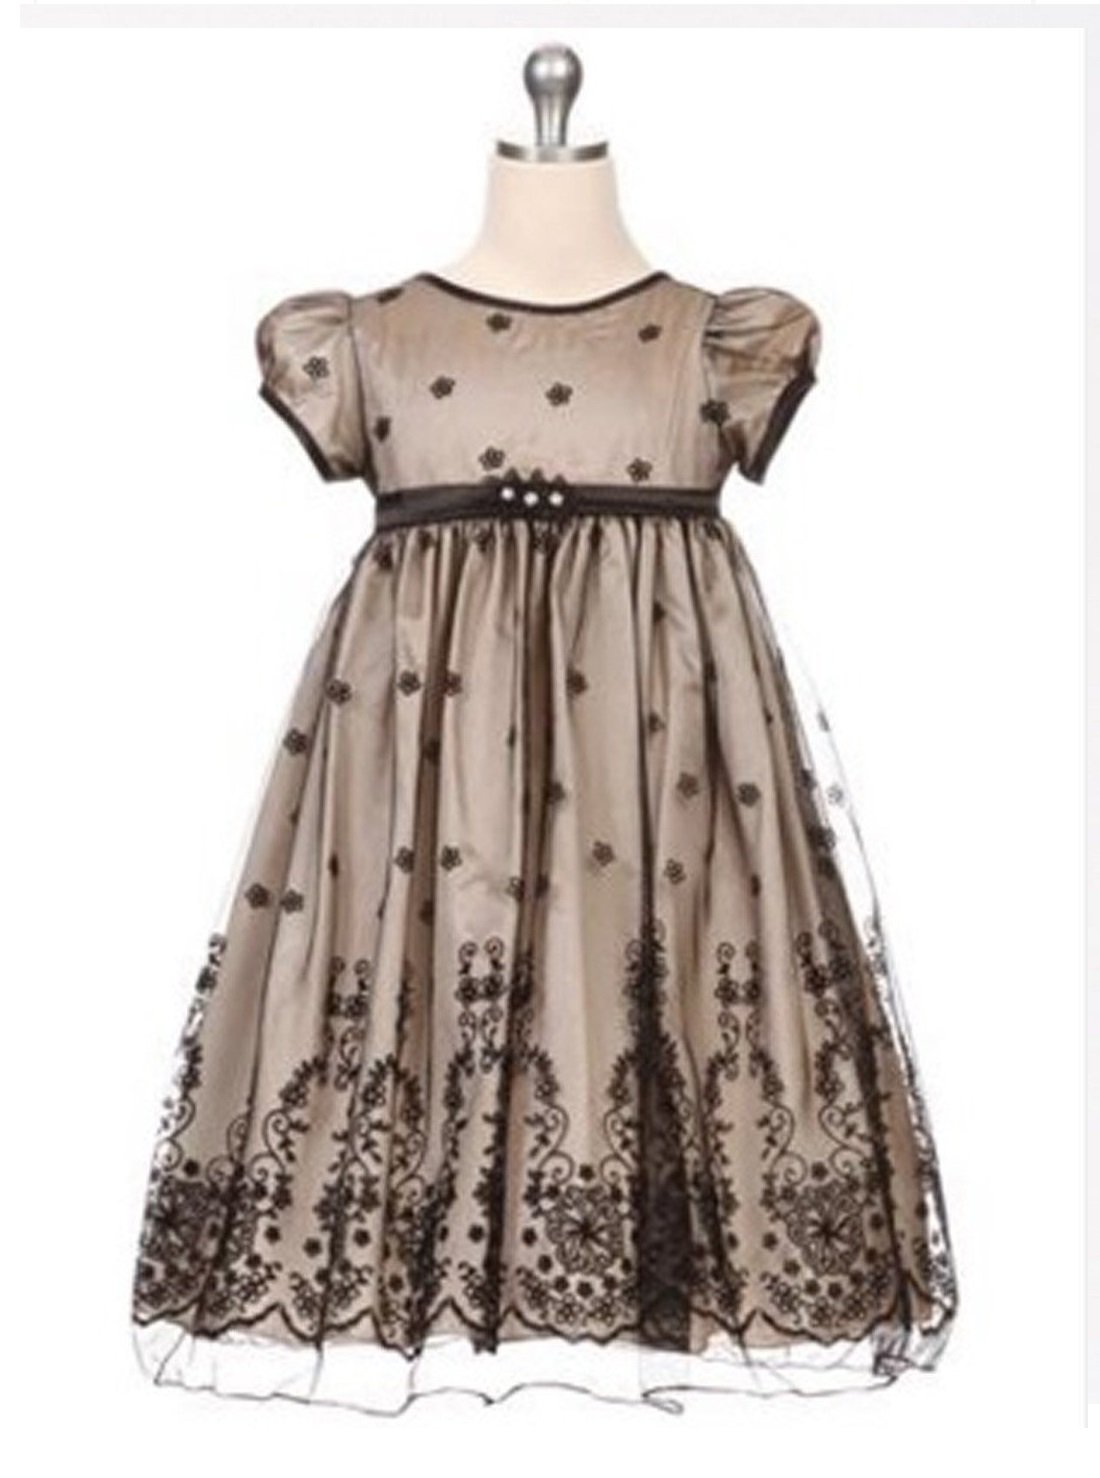 Flower Girl Dress Taffeta and Floral Embroidered Tulle Overlay DressCham Party Dress Special Occasion Dress